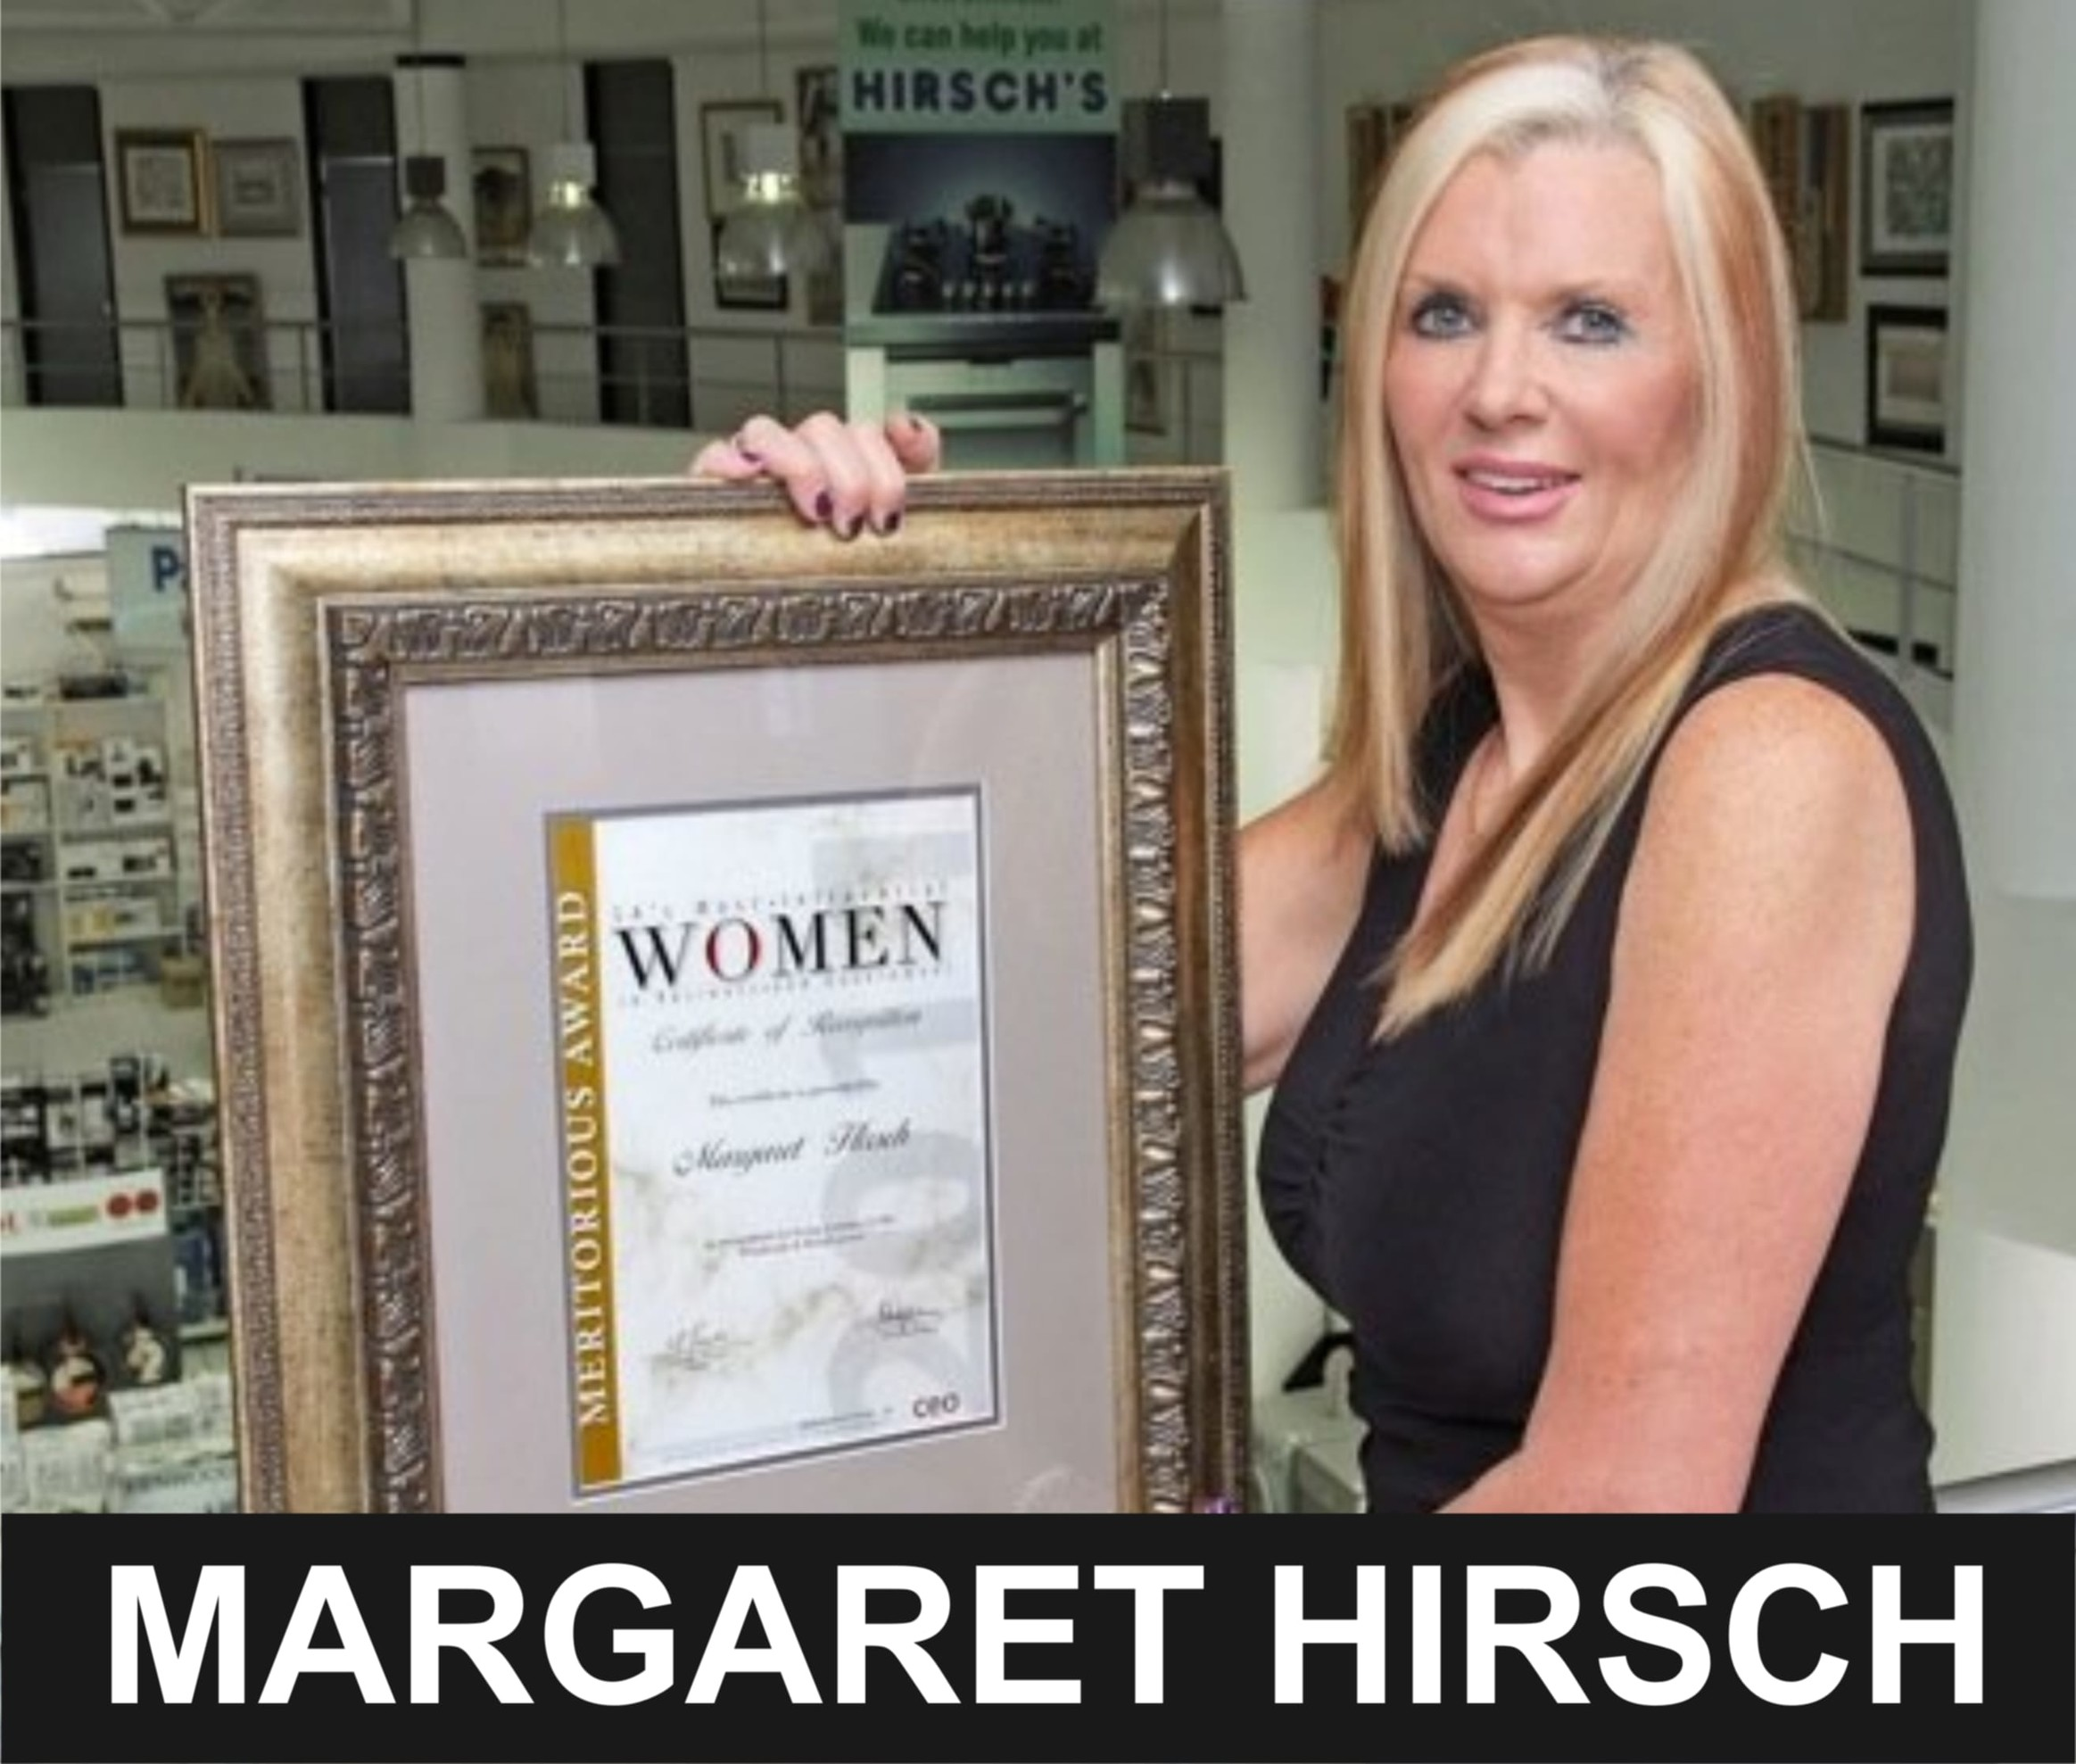 Margaret Hirsch - SA Billionaire Tycoon and COO of Hirsch's Home Store